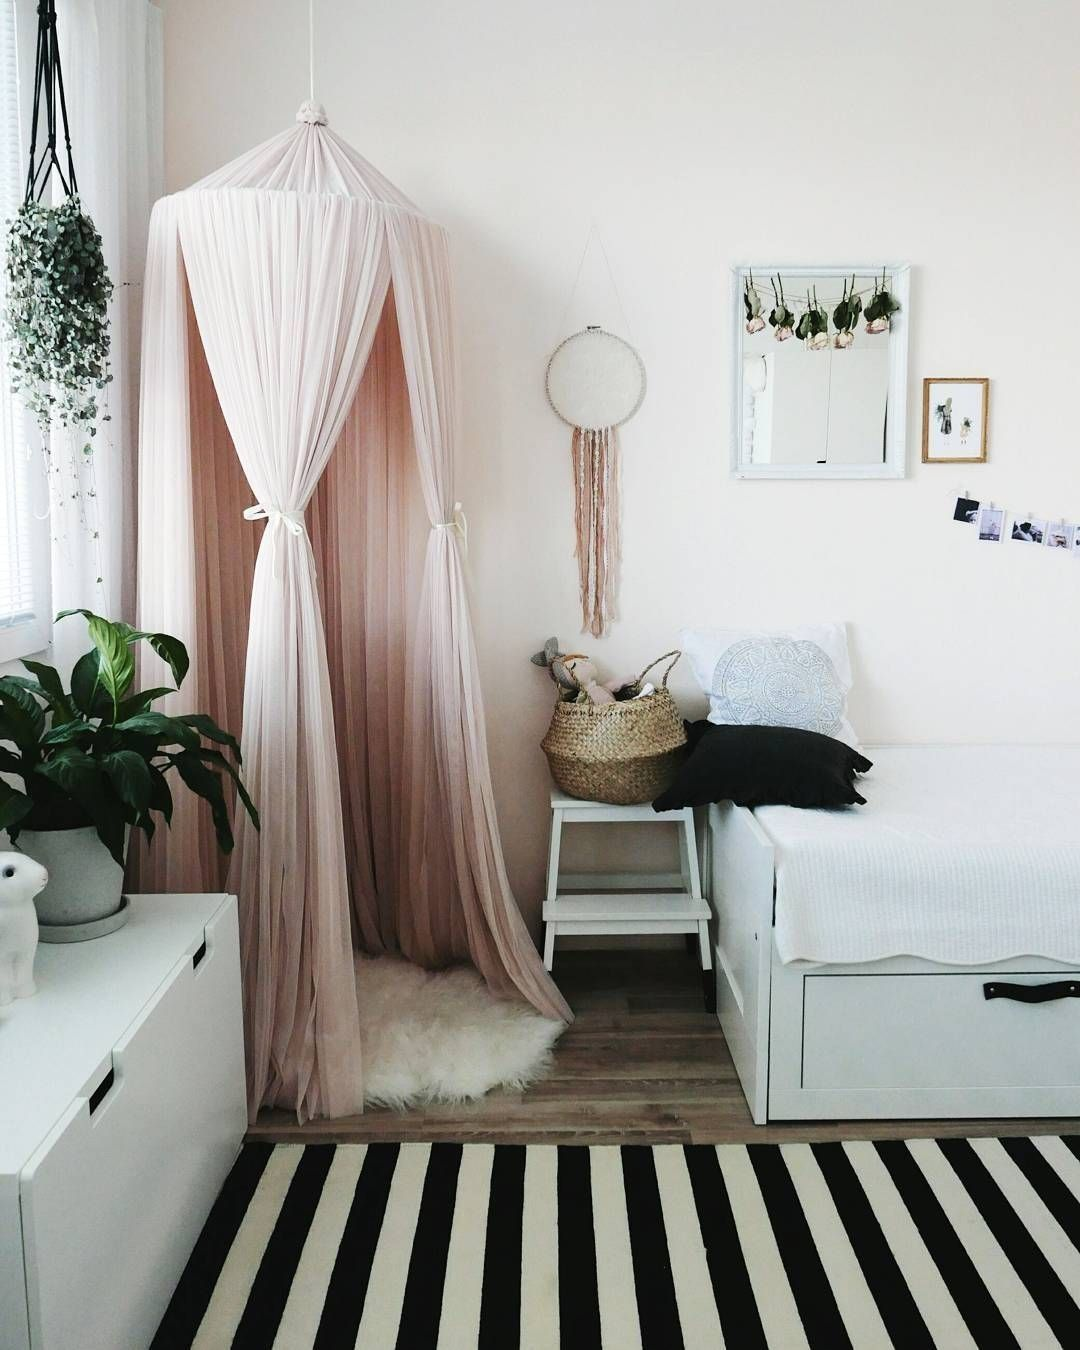 25 Cute Canopy Reading Nook Inspiration For Small Room The Urban Interior Canopy Bed Diy Girl Bedroom Decor Girl Room